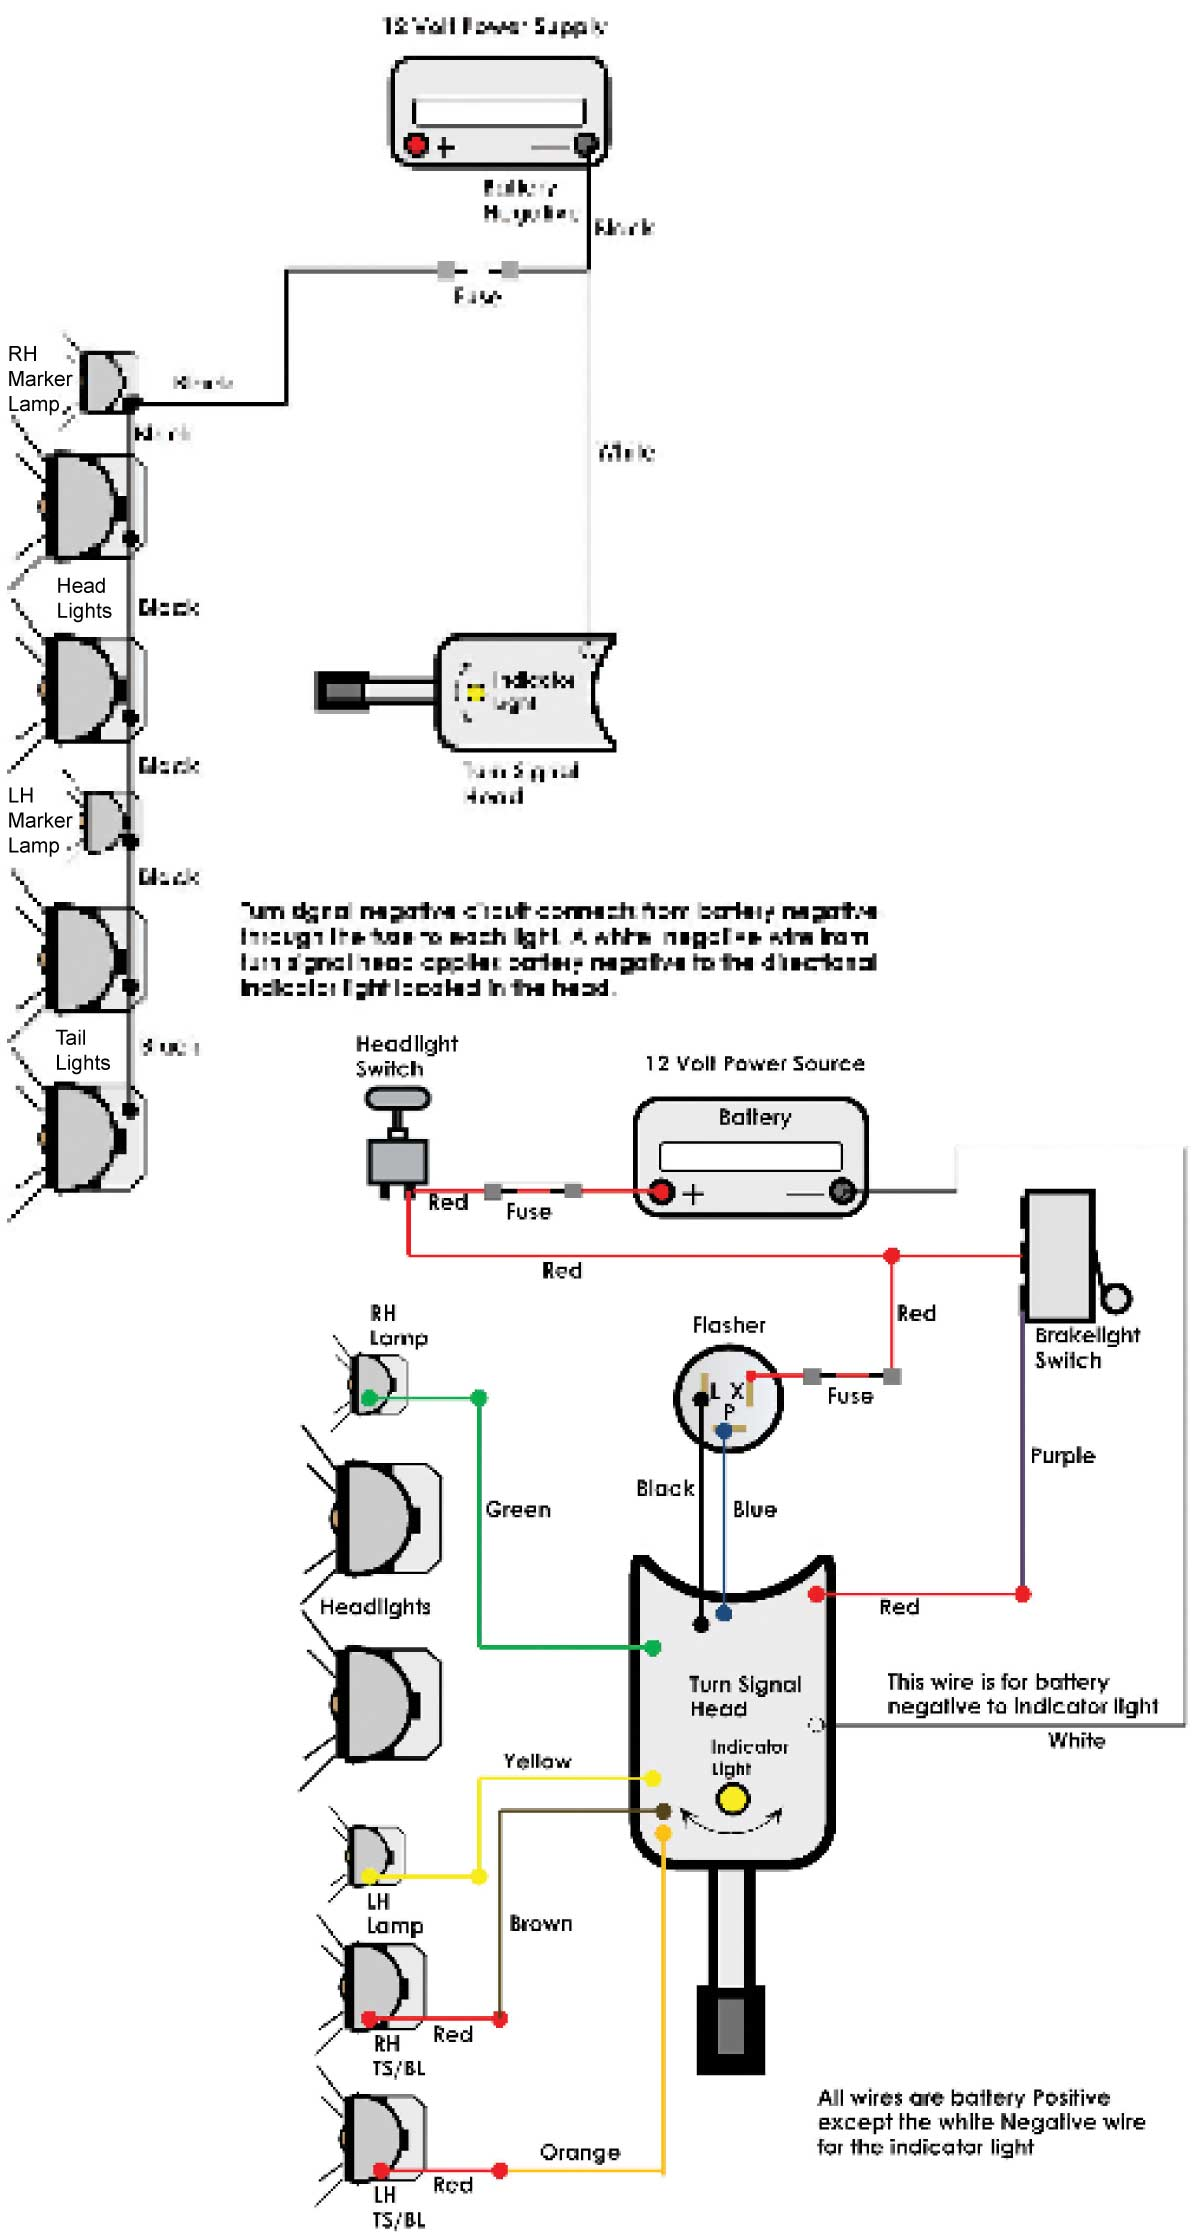 guru july august 2009 buggiesunlimited com how to install turn signals on a club car golf cart at Golf Cart Turn Signal Wiring Diagram